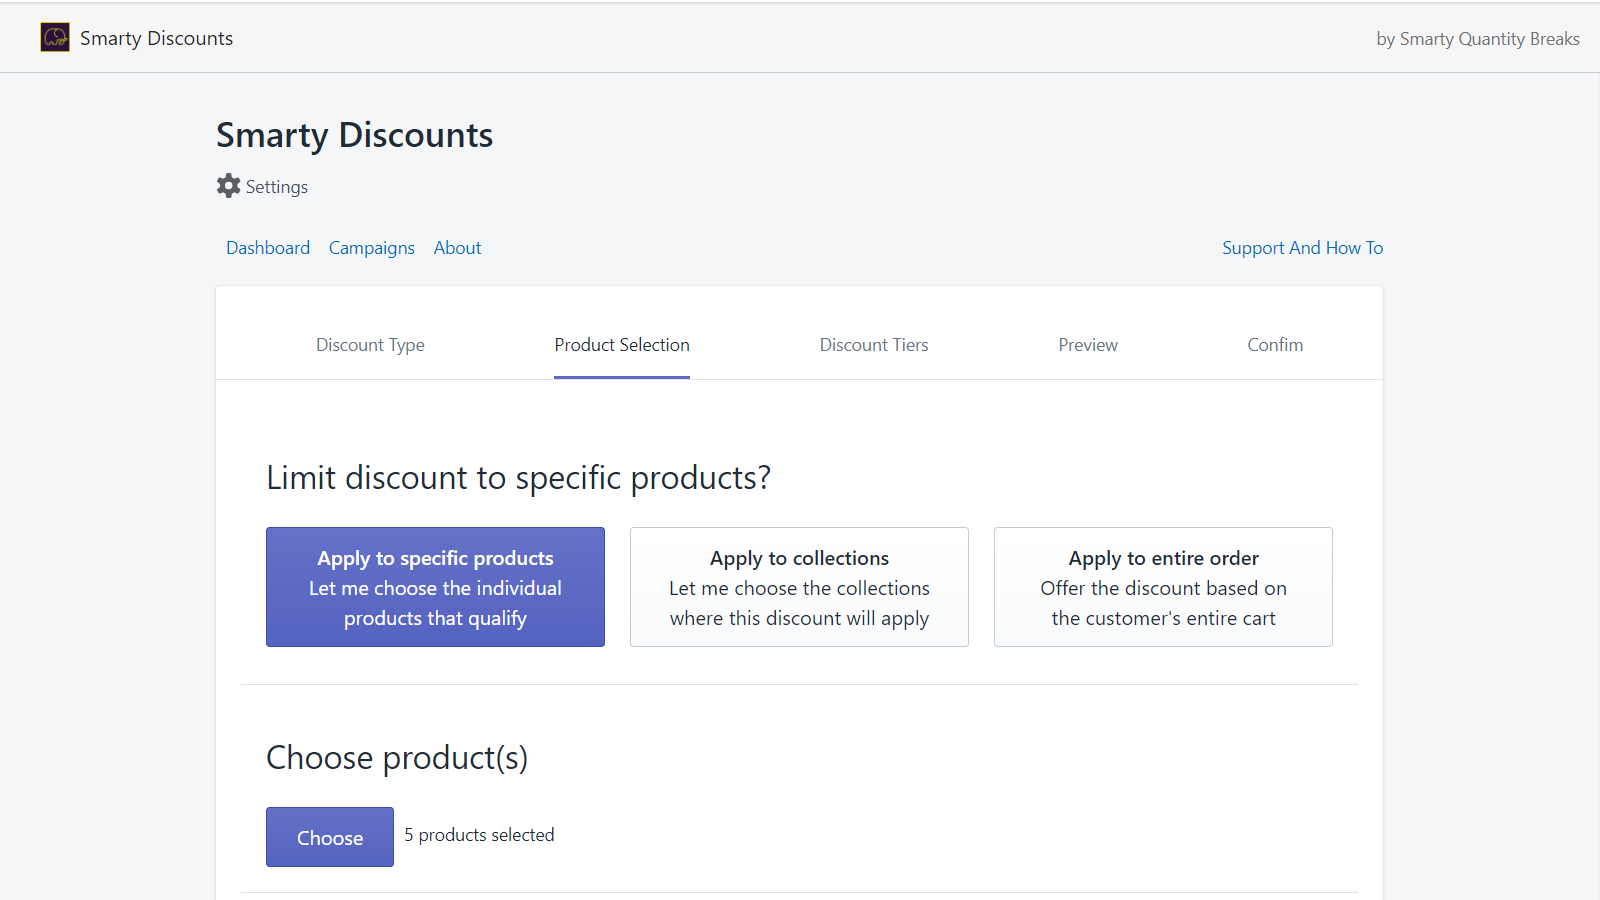 Flexible offers on specific products, entire collections or shop